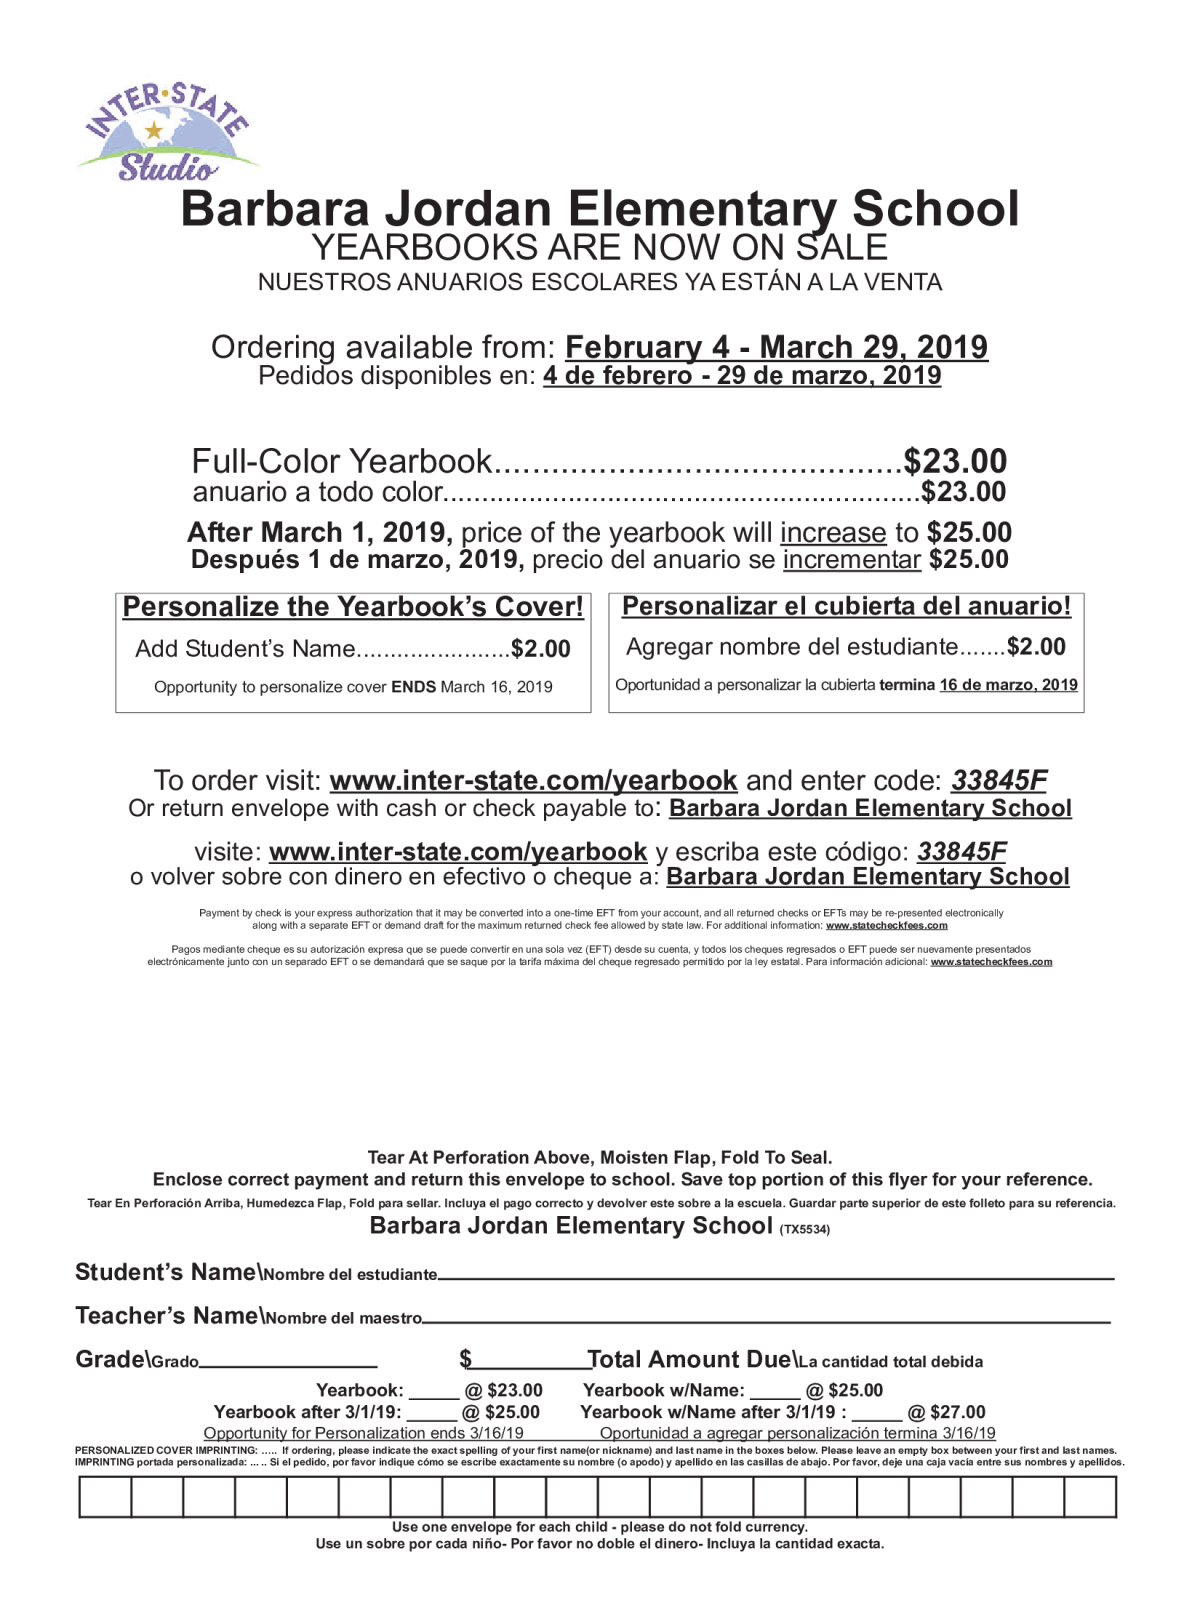 db84b1bc75ec Image of a flyer titled Yearbook Order Form